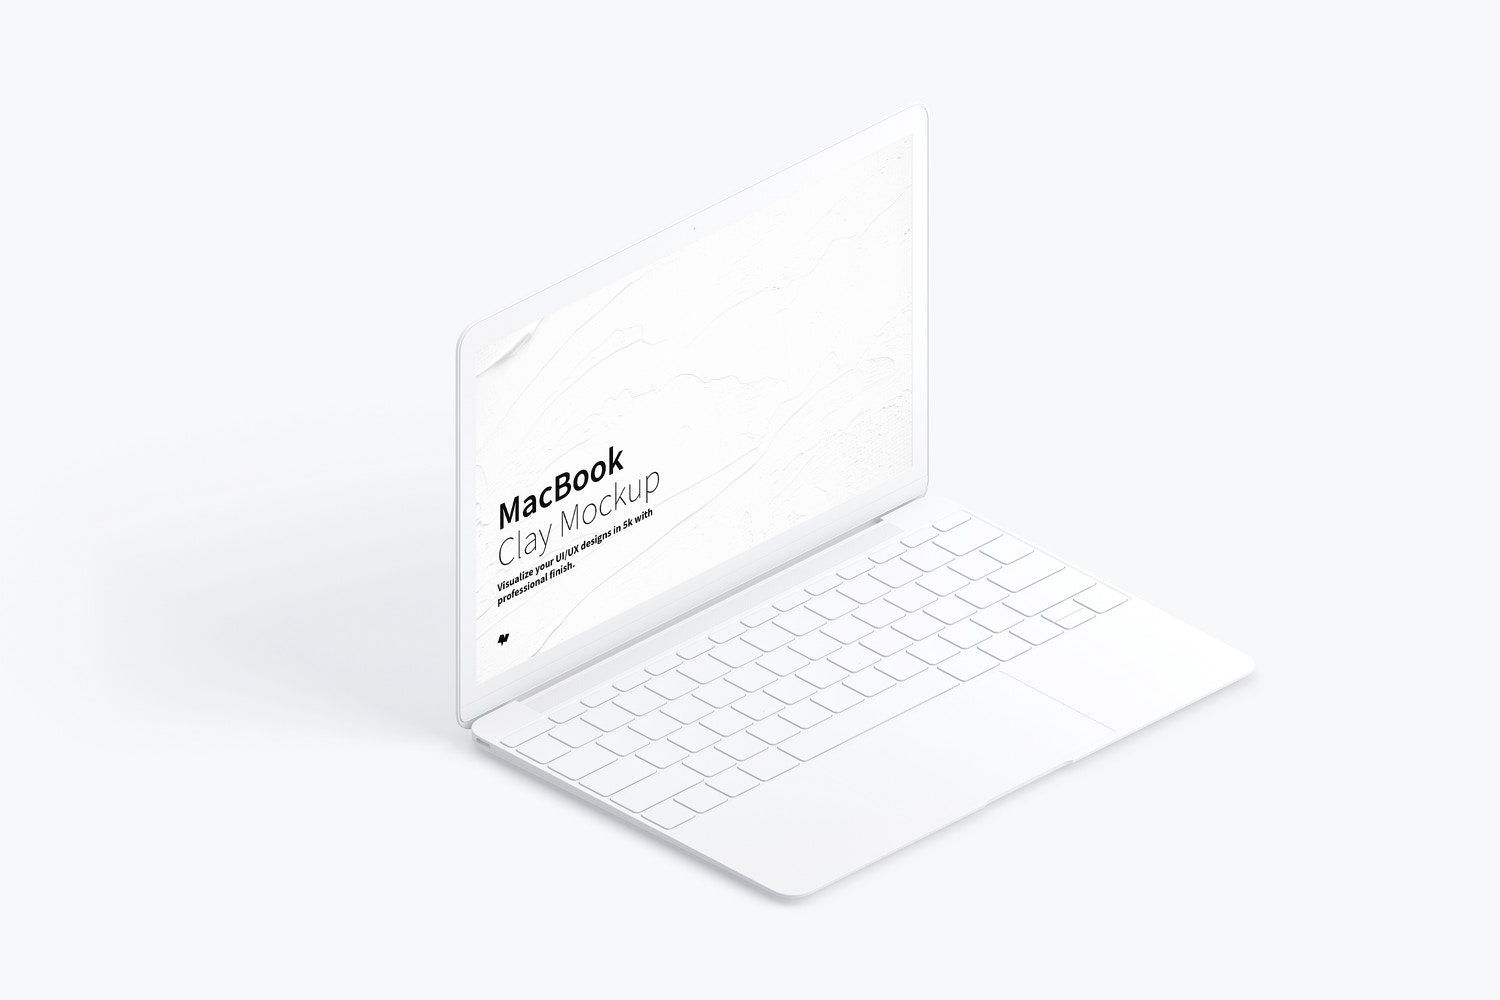 Clay MacBook Mockup, Isometric Left View by Original Mockups on Original Mockups